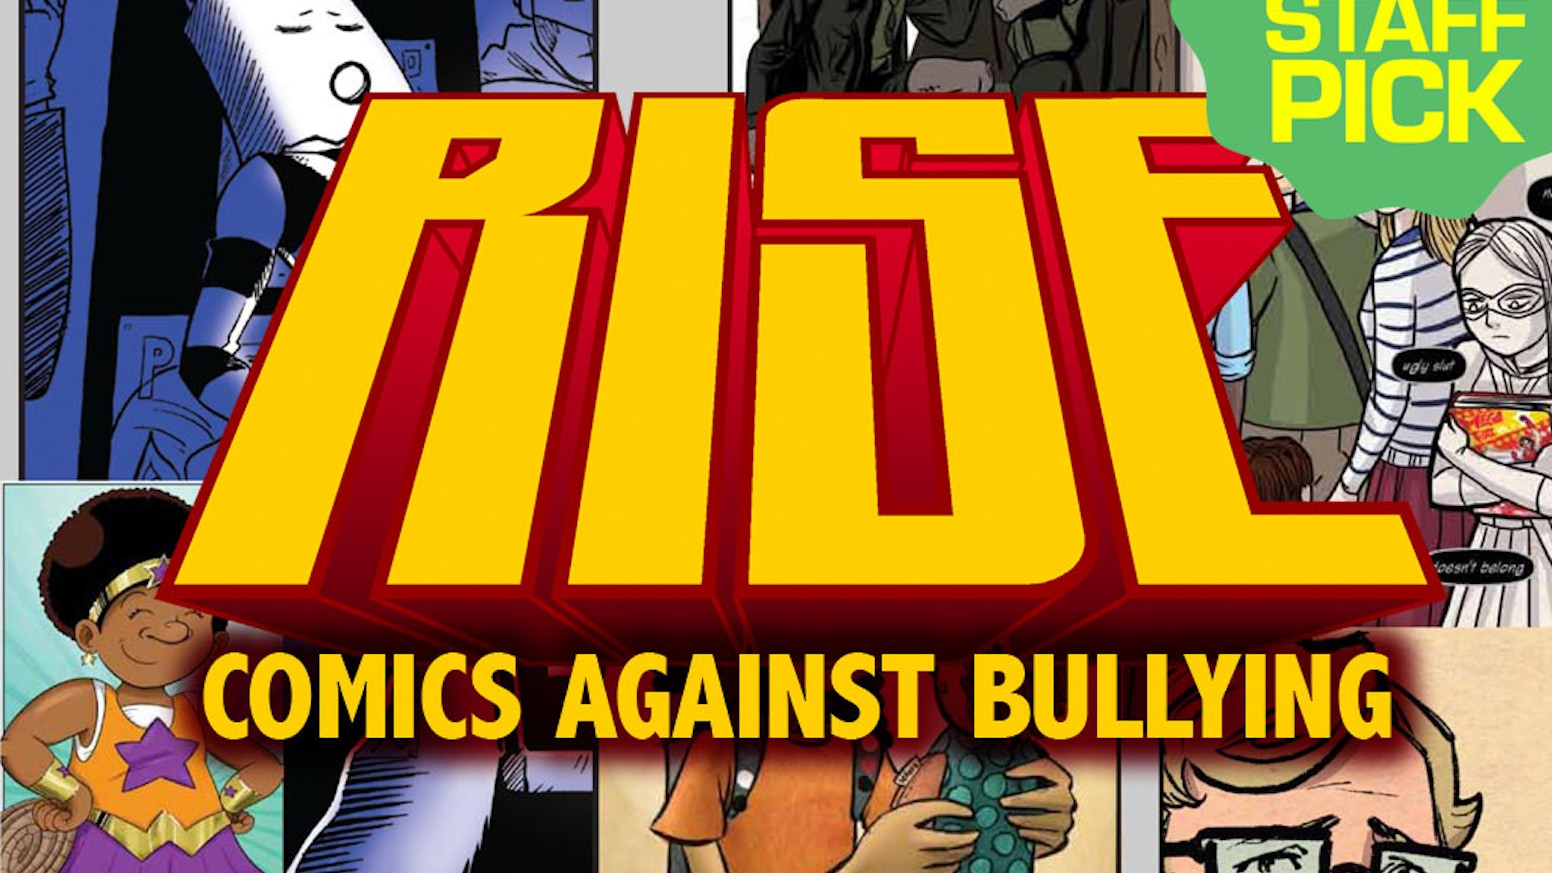 A comics series dealing with bullying, to be distributed free by organizations such as GLAAD, Stand for the Silent, and Prism Comics.